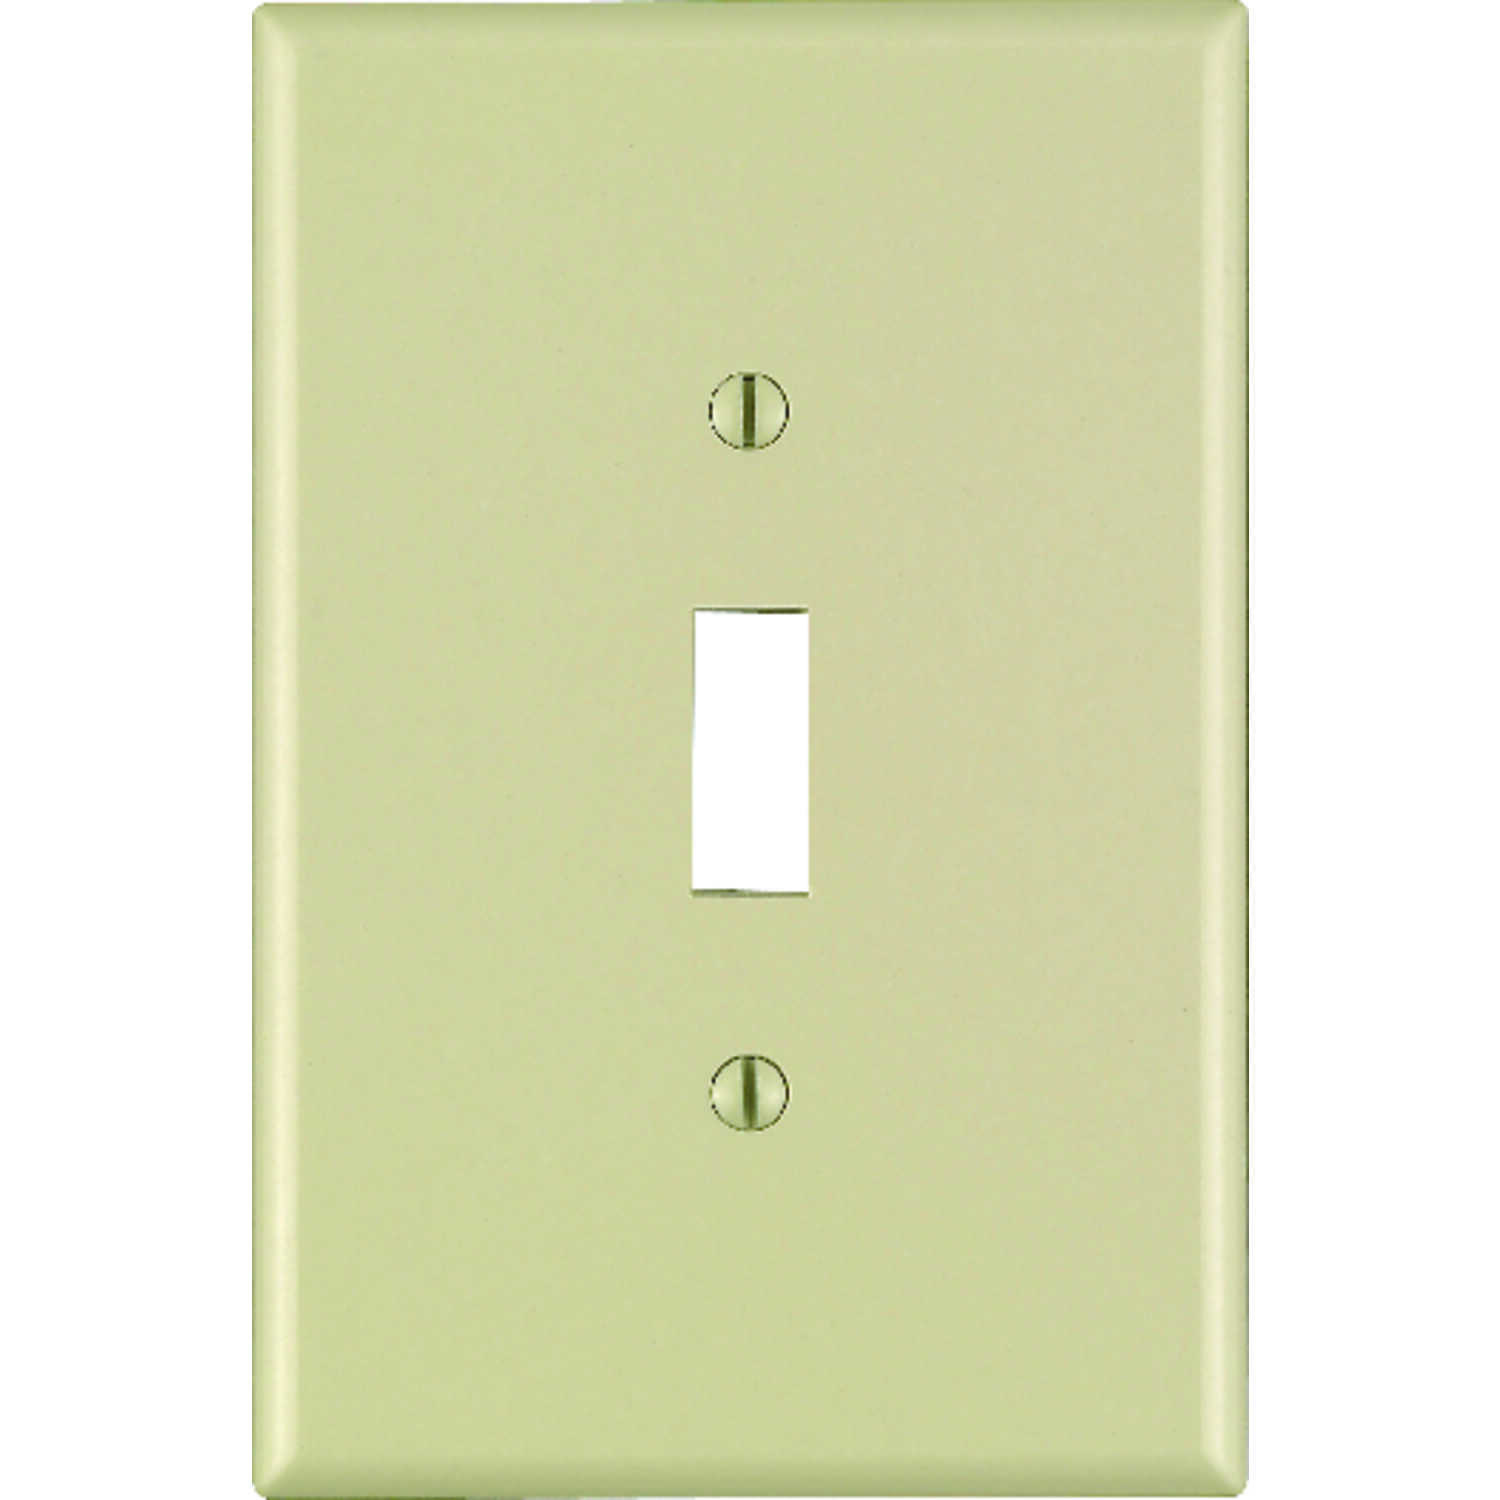 Leviton  Ivory  1 gang Nylon  Toggle  Wall Plate  1 pk